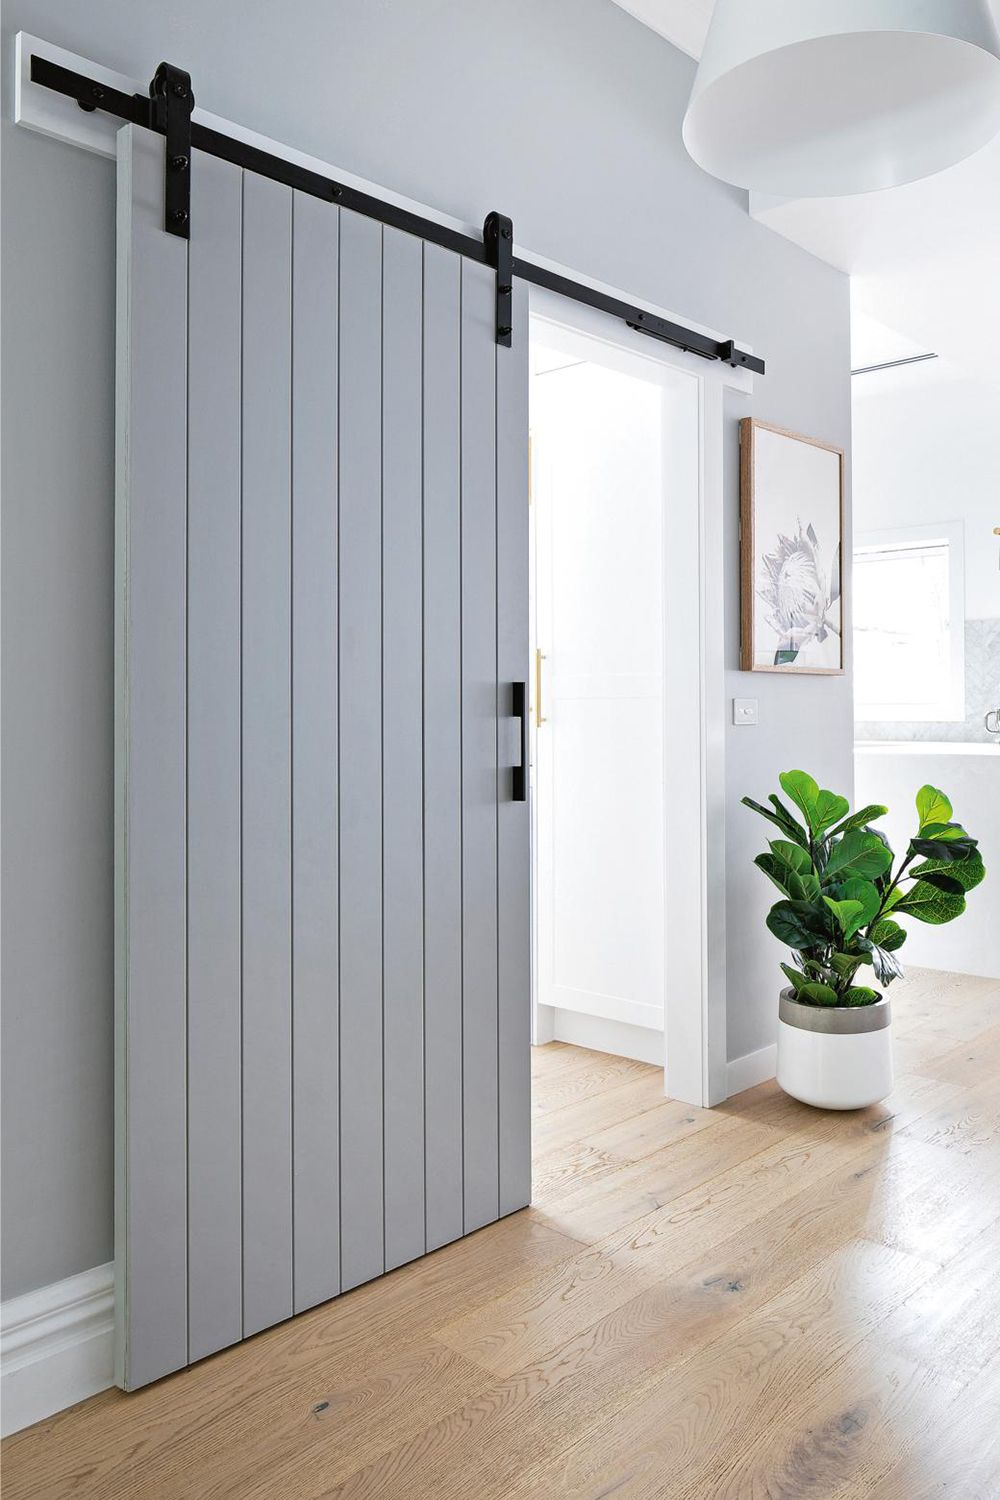 Barn Style Sliding Doors How Why To Get The Look Barn Style Sliding Doors Barn Style Doors Interior Barn Doors